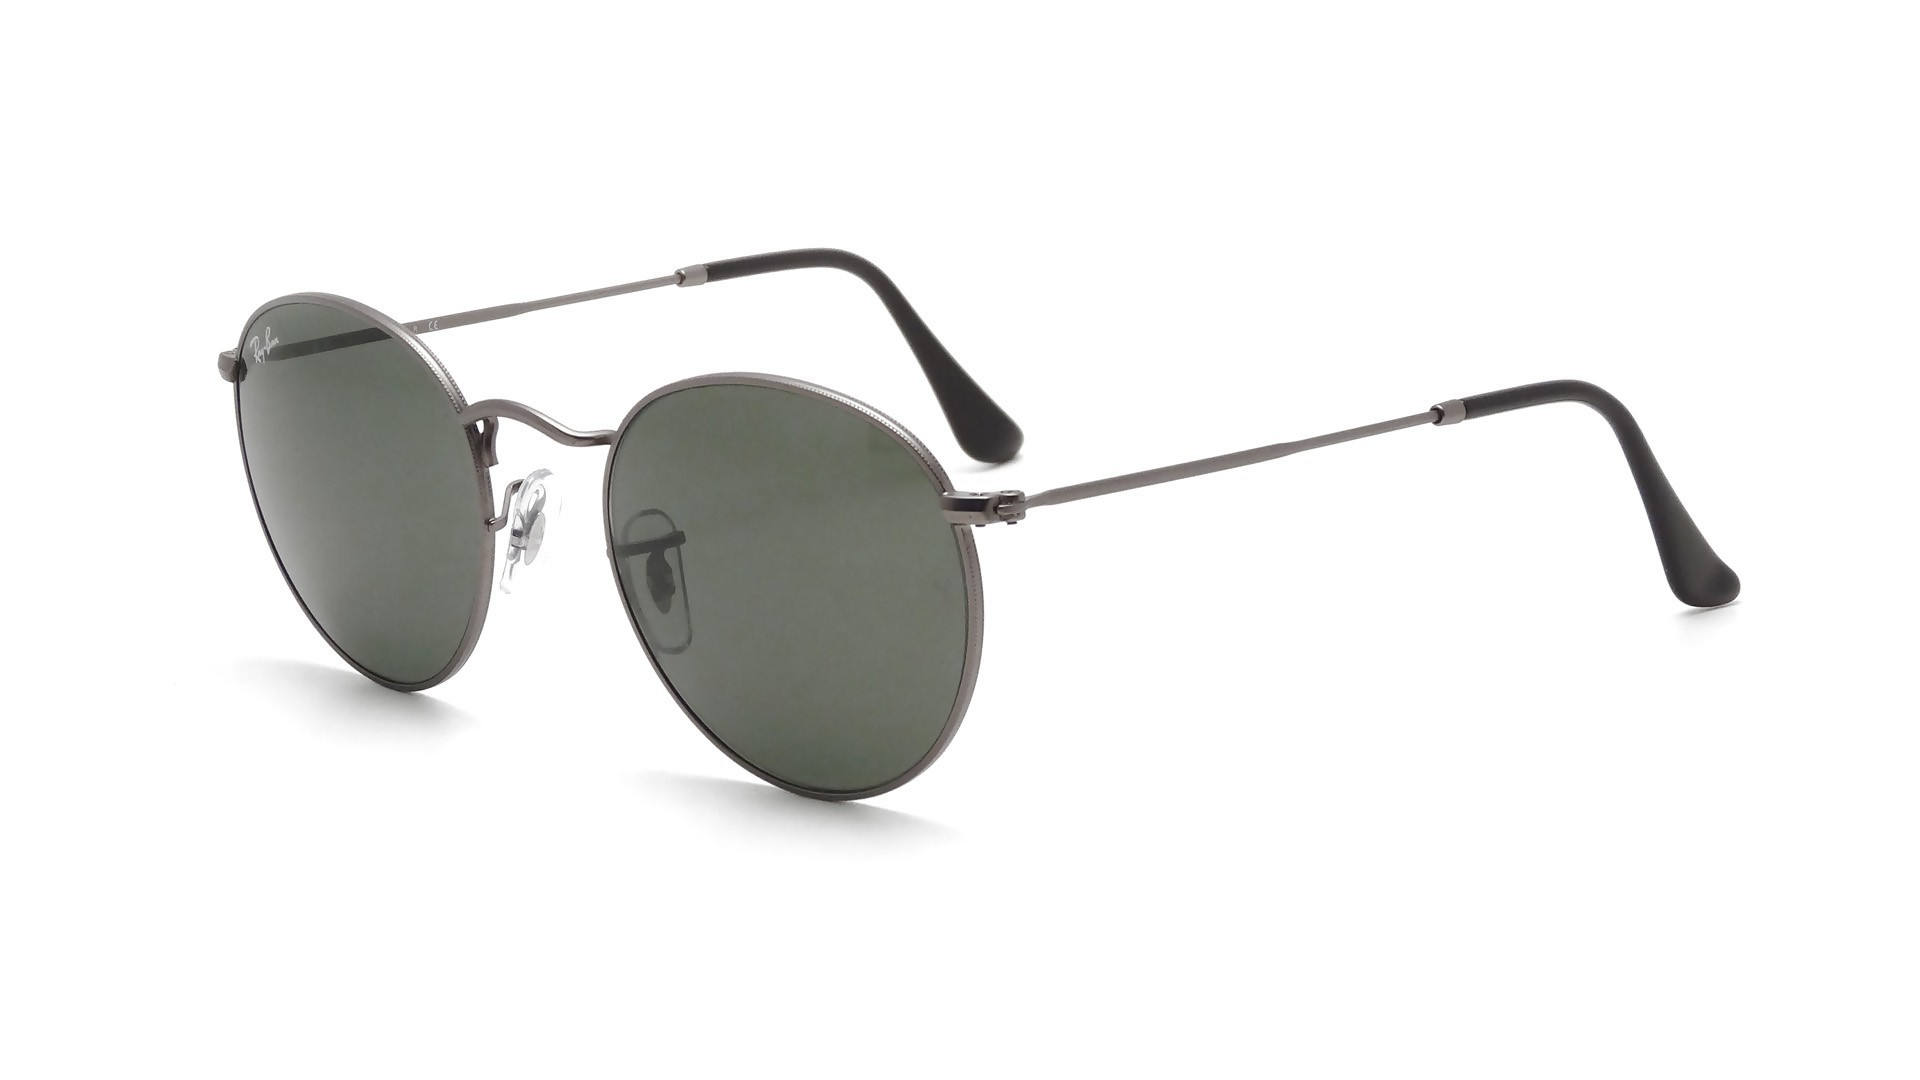 fada22f64f Sunglasses Ray-Ban Round Metal Grey Matte G-15 RB3447 029 53-21 Large